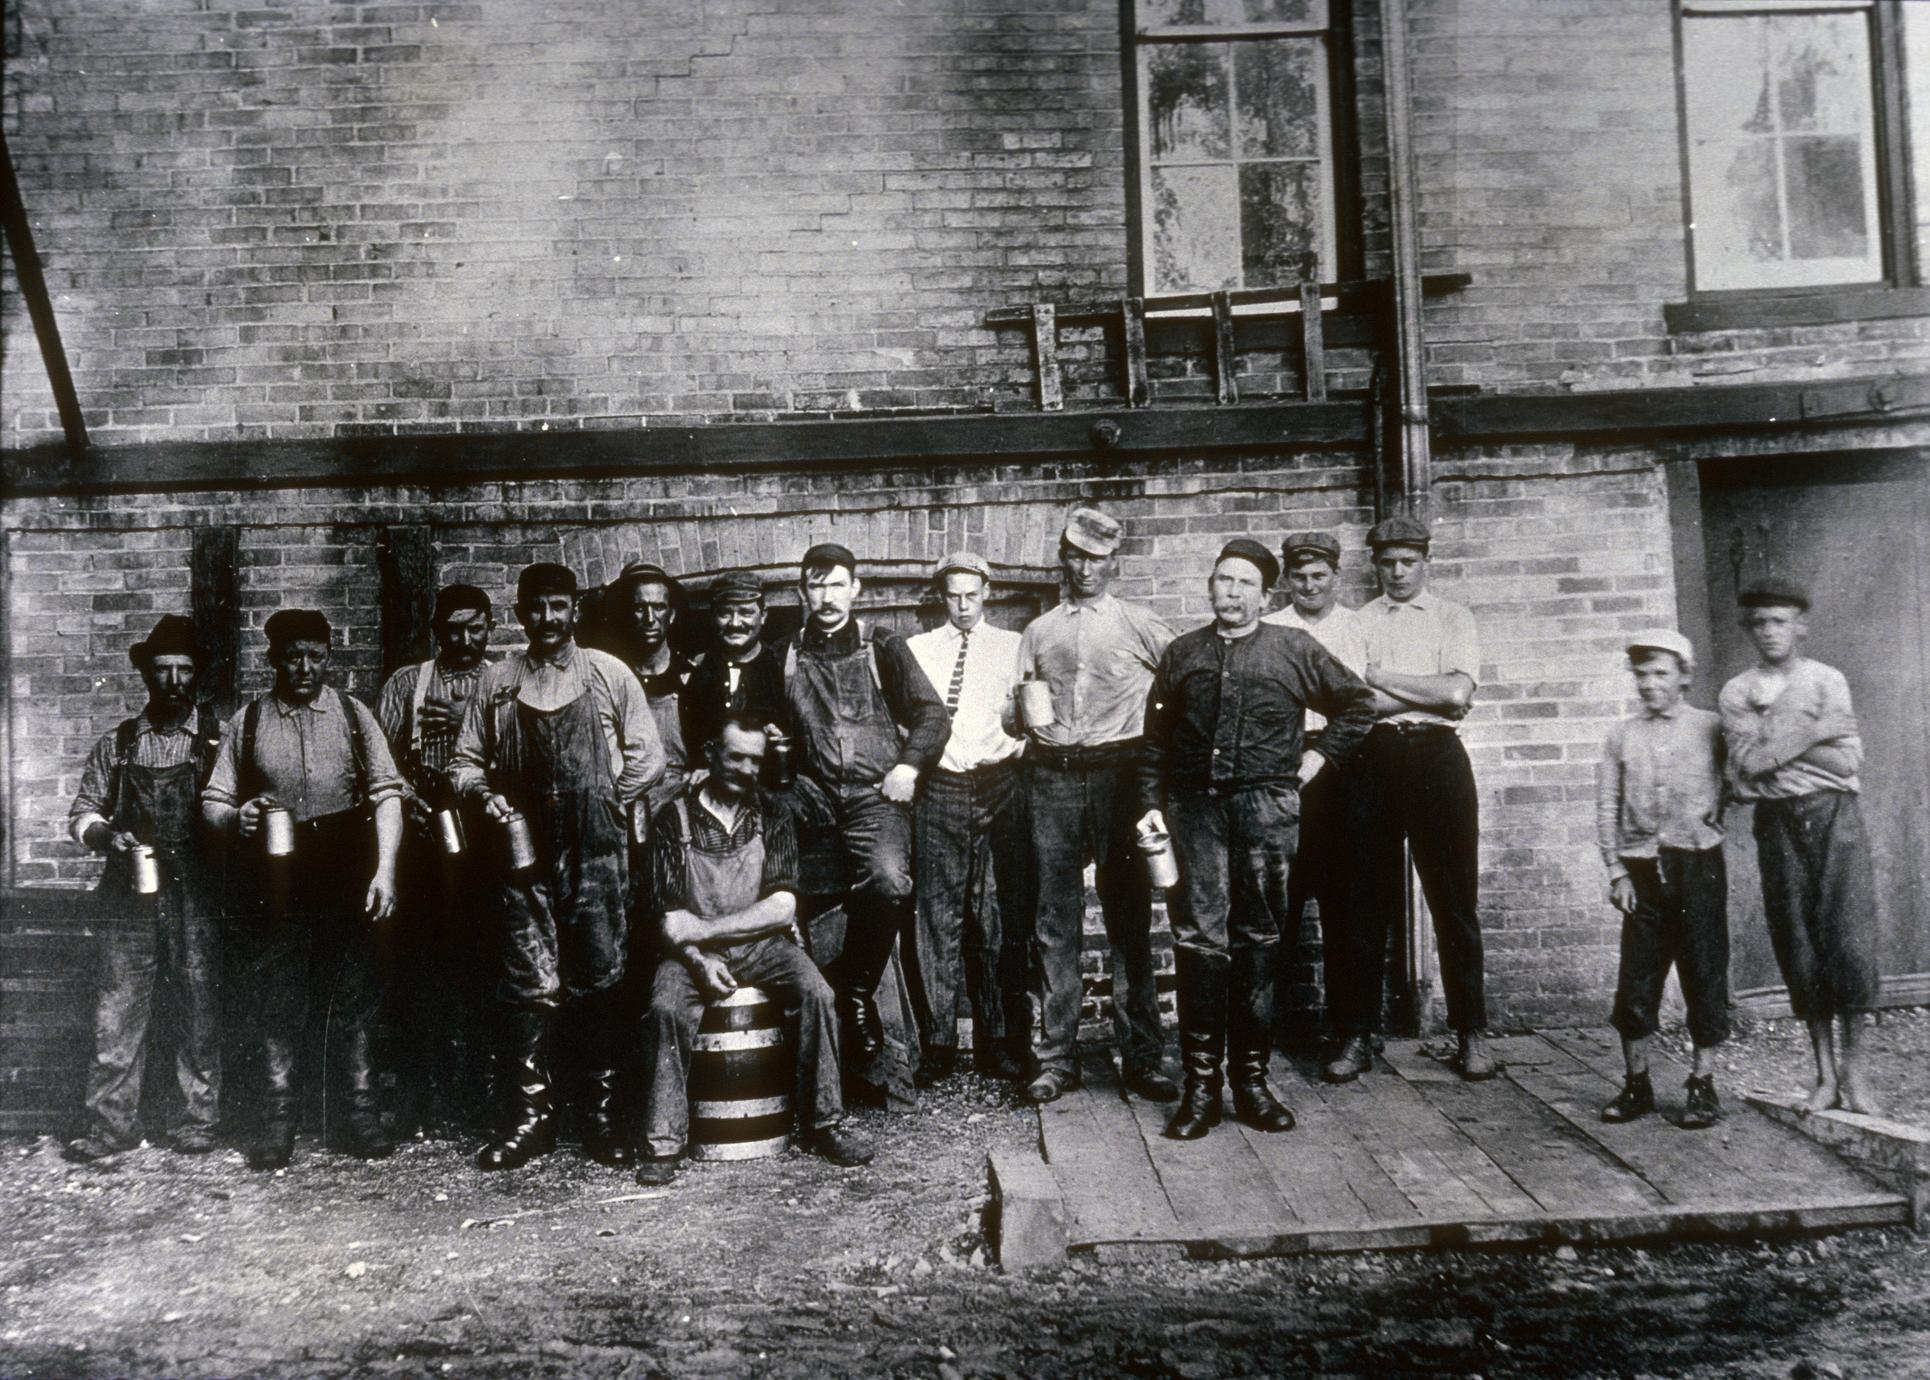 Brewery workers with beer glasses